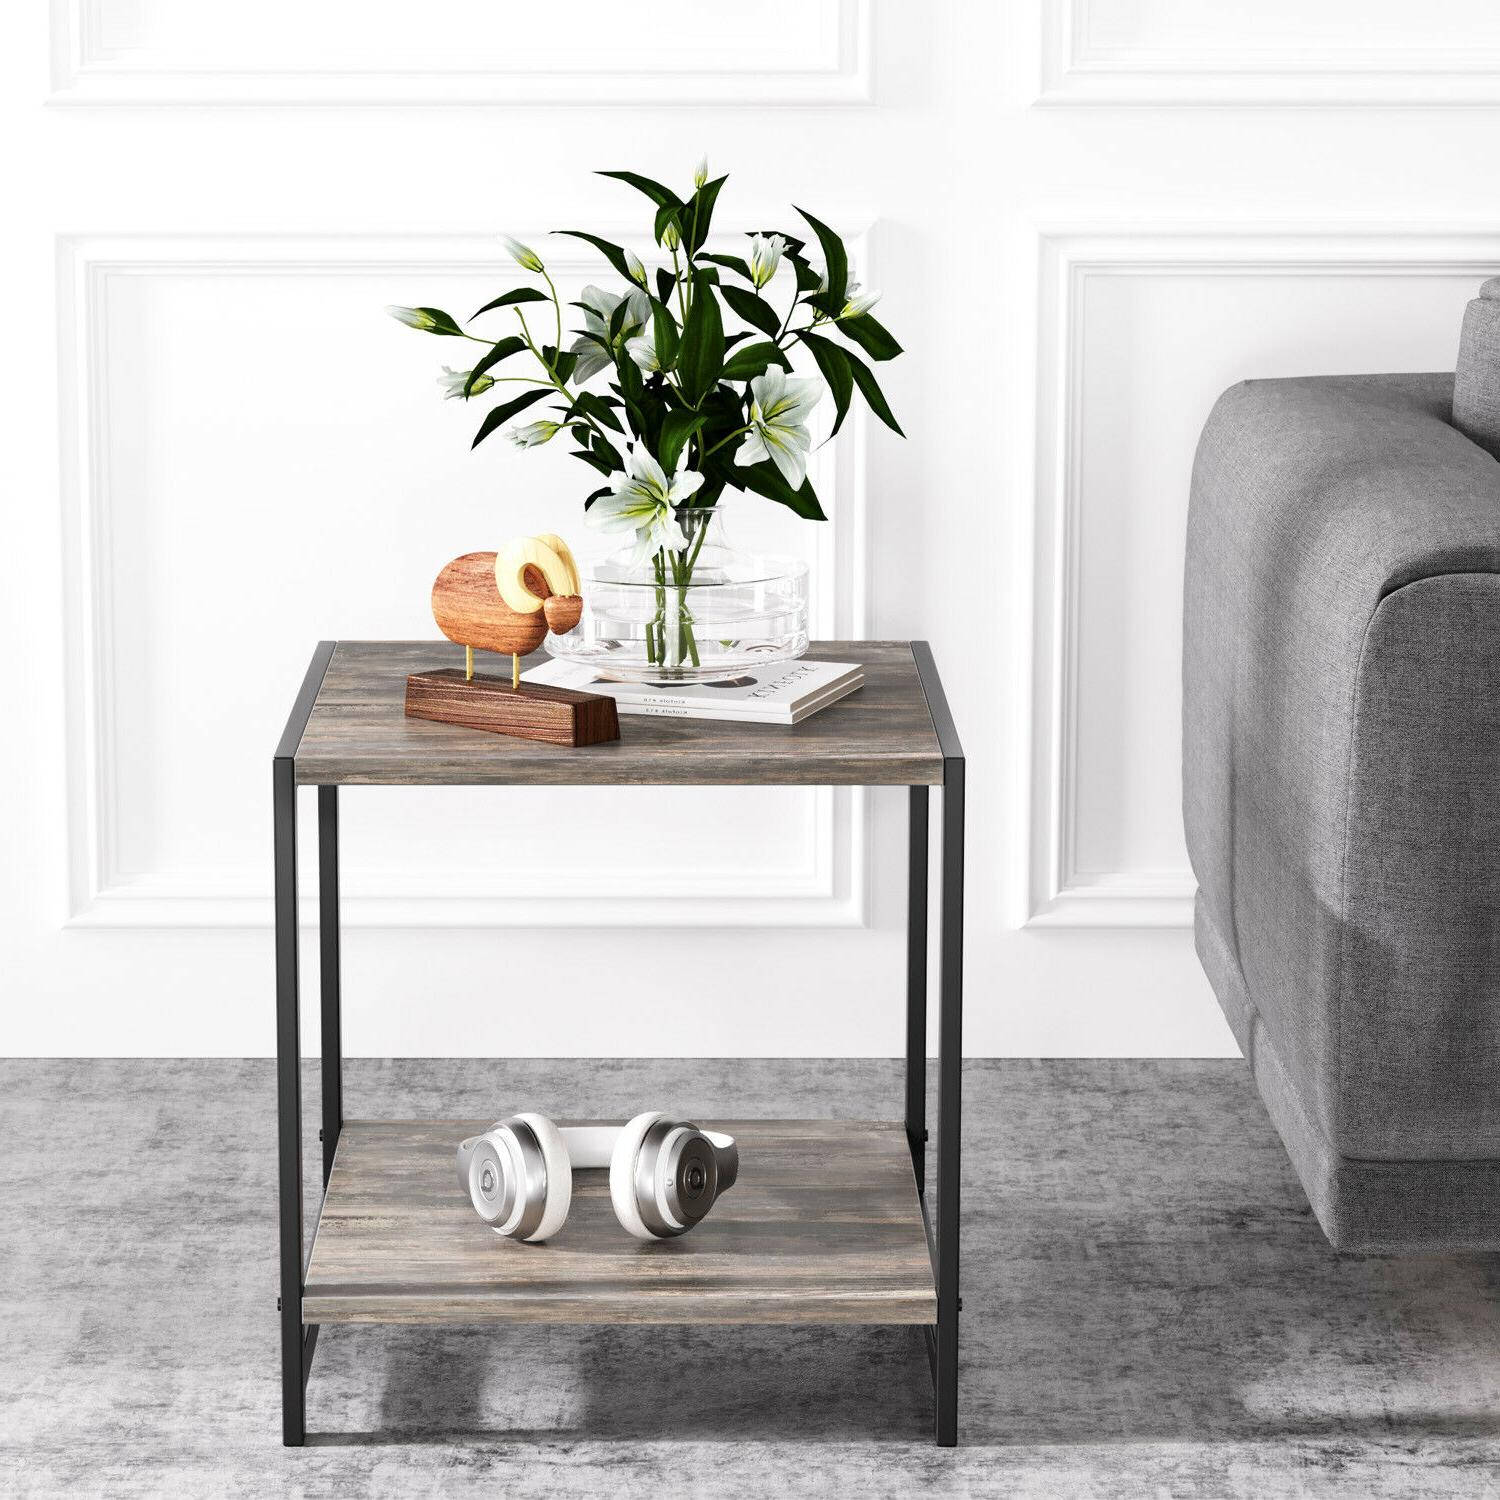 IRONCK Industrial 2-Tier Table, Table